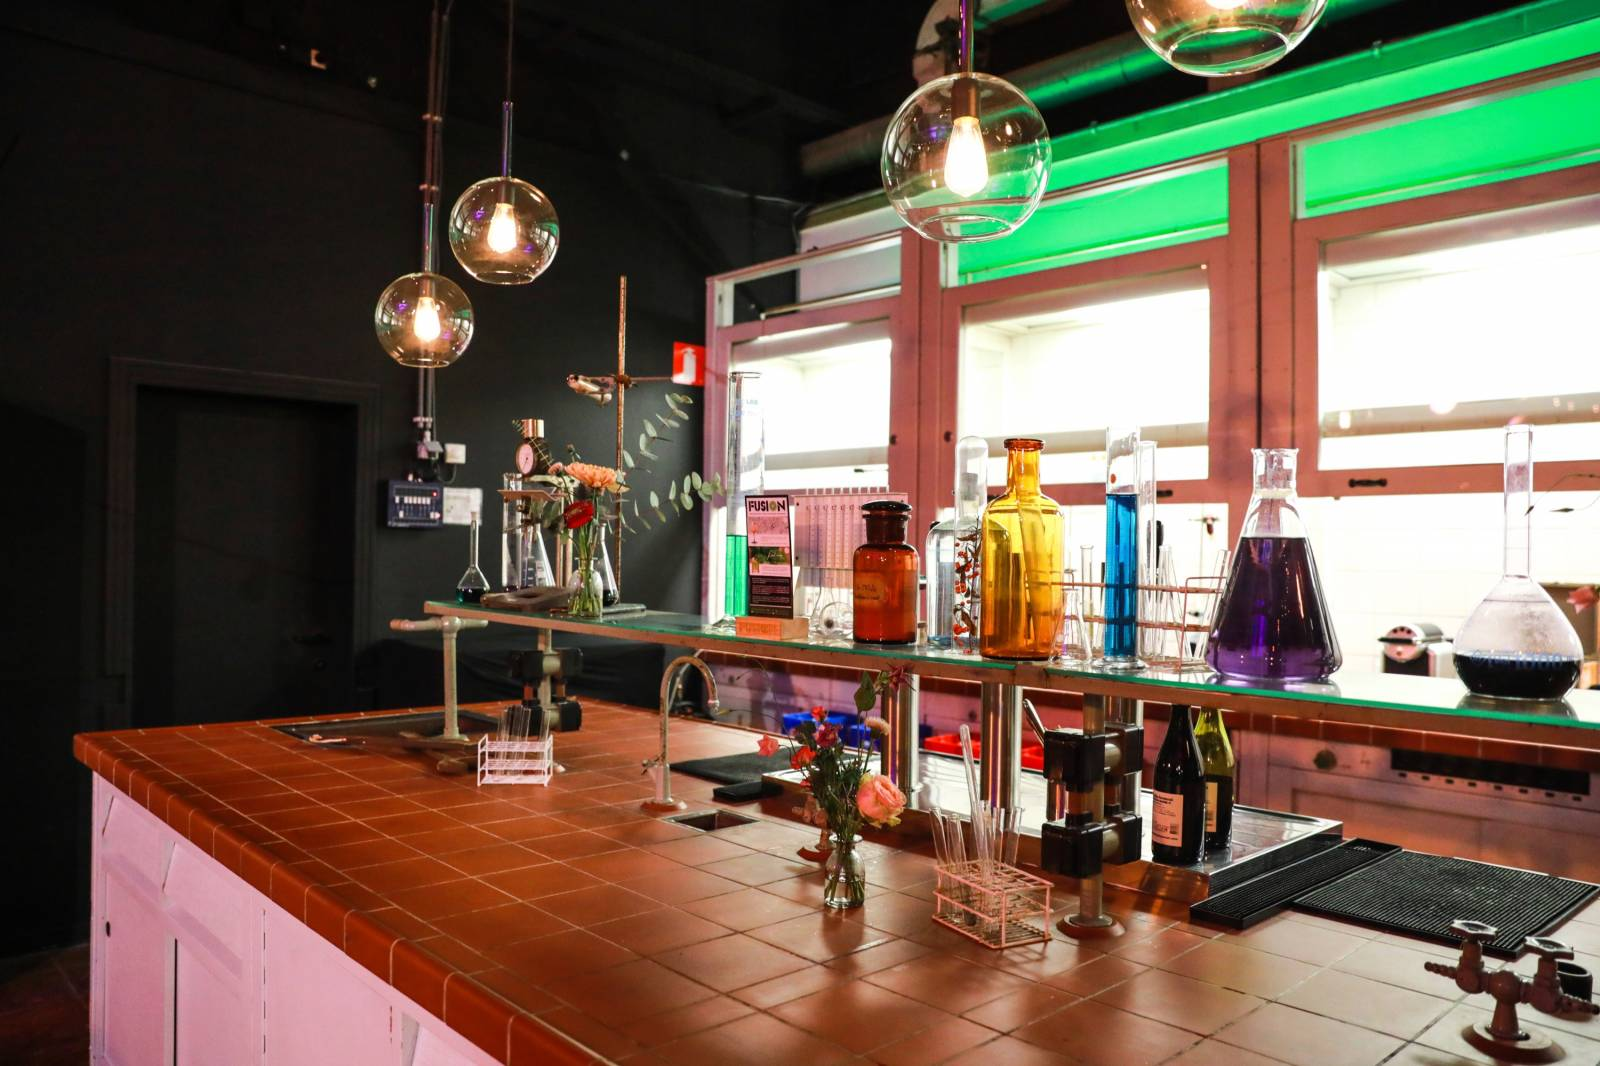 The Lab - Feestzaal - Feestlocatie - Huwelijk - Event - Feest - House of Weddings & House of Events - 23